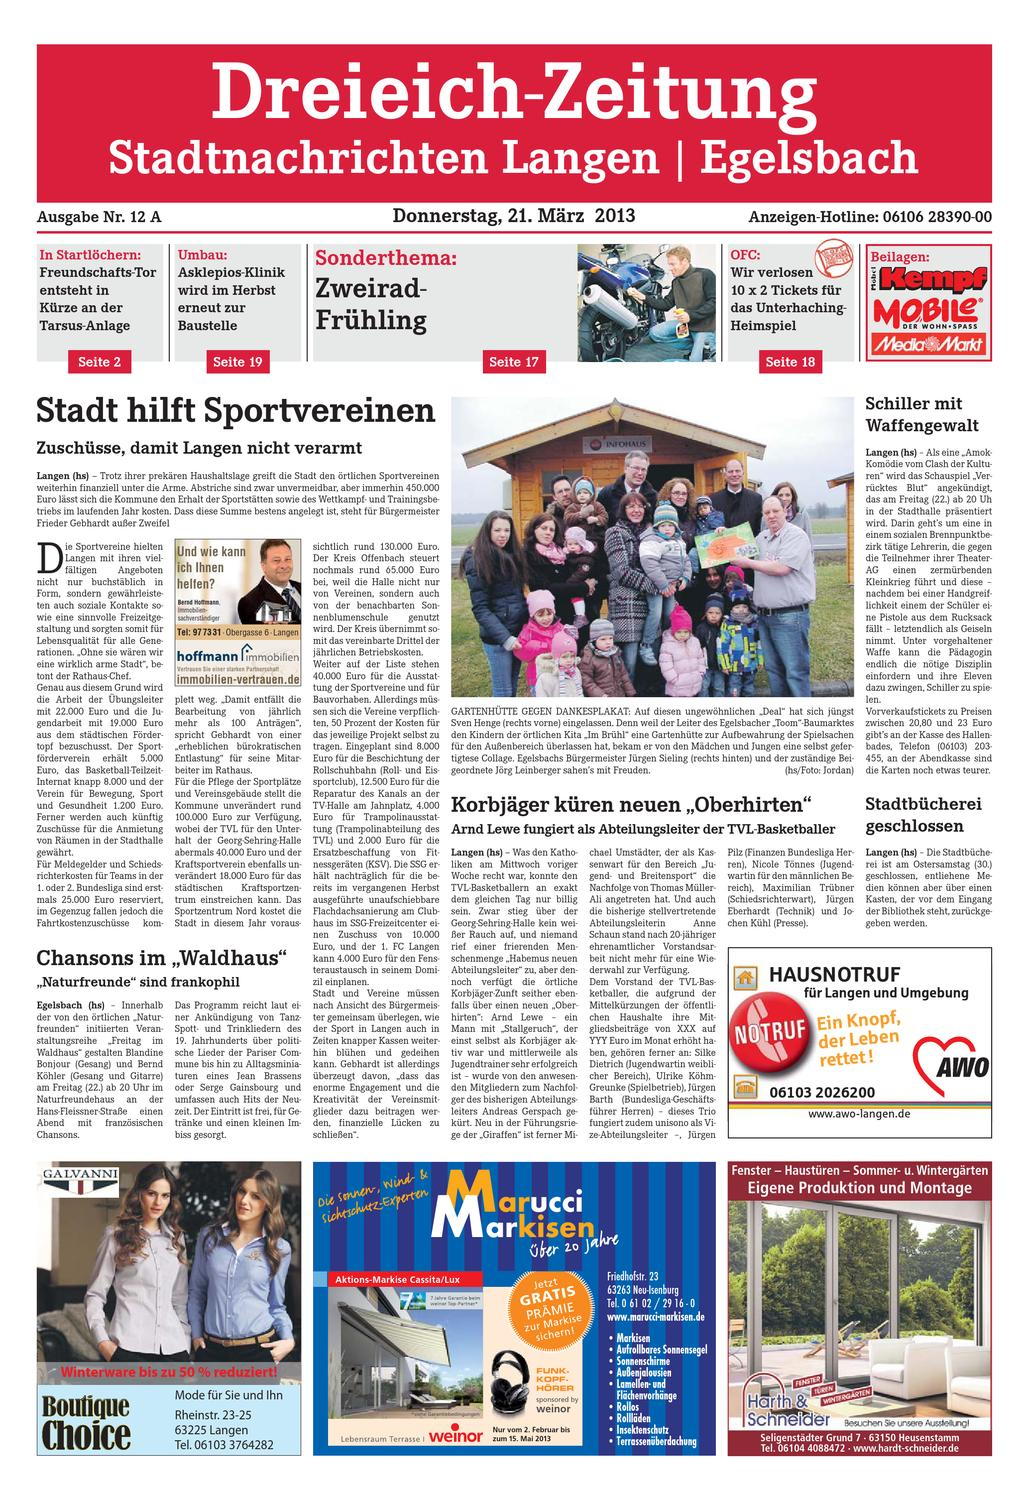 DZ_Online_012_13_A by Dreieich-Zeitung/Offenbach-Journal - issuu